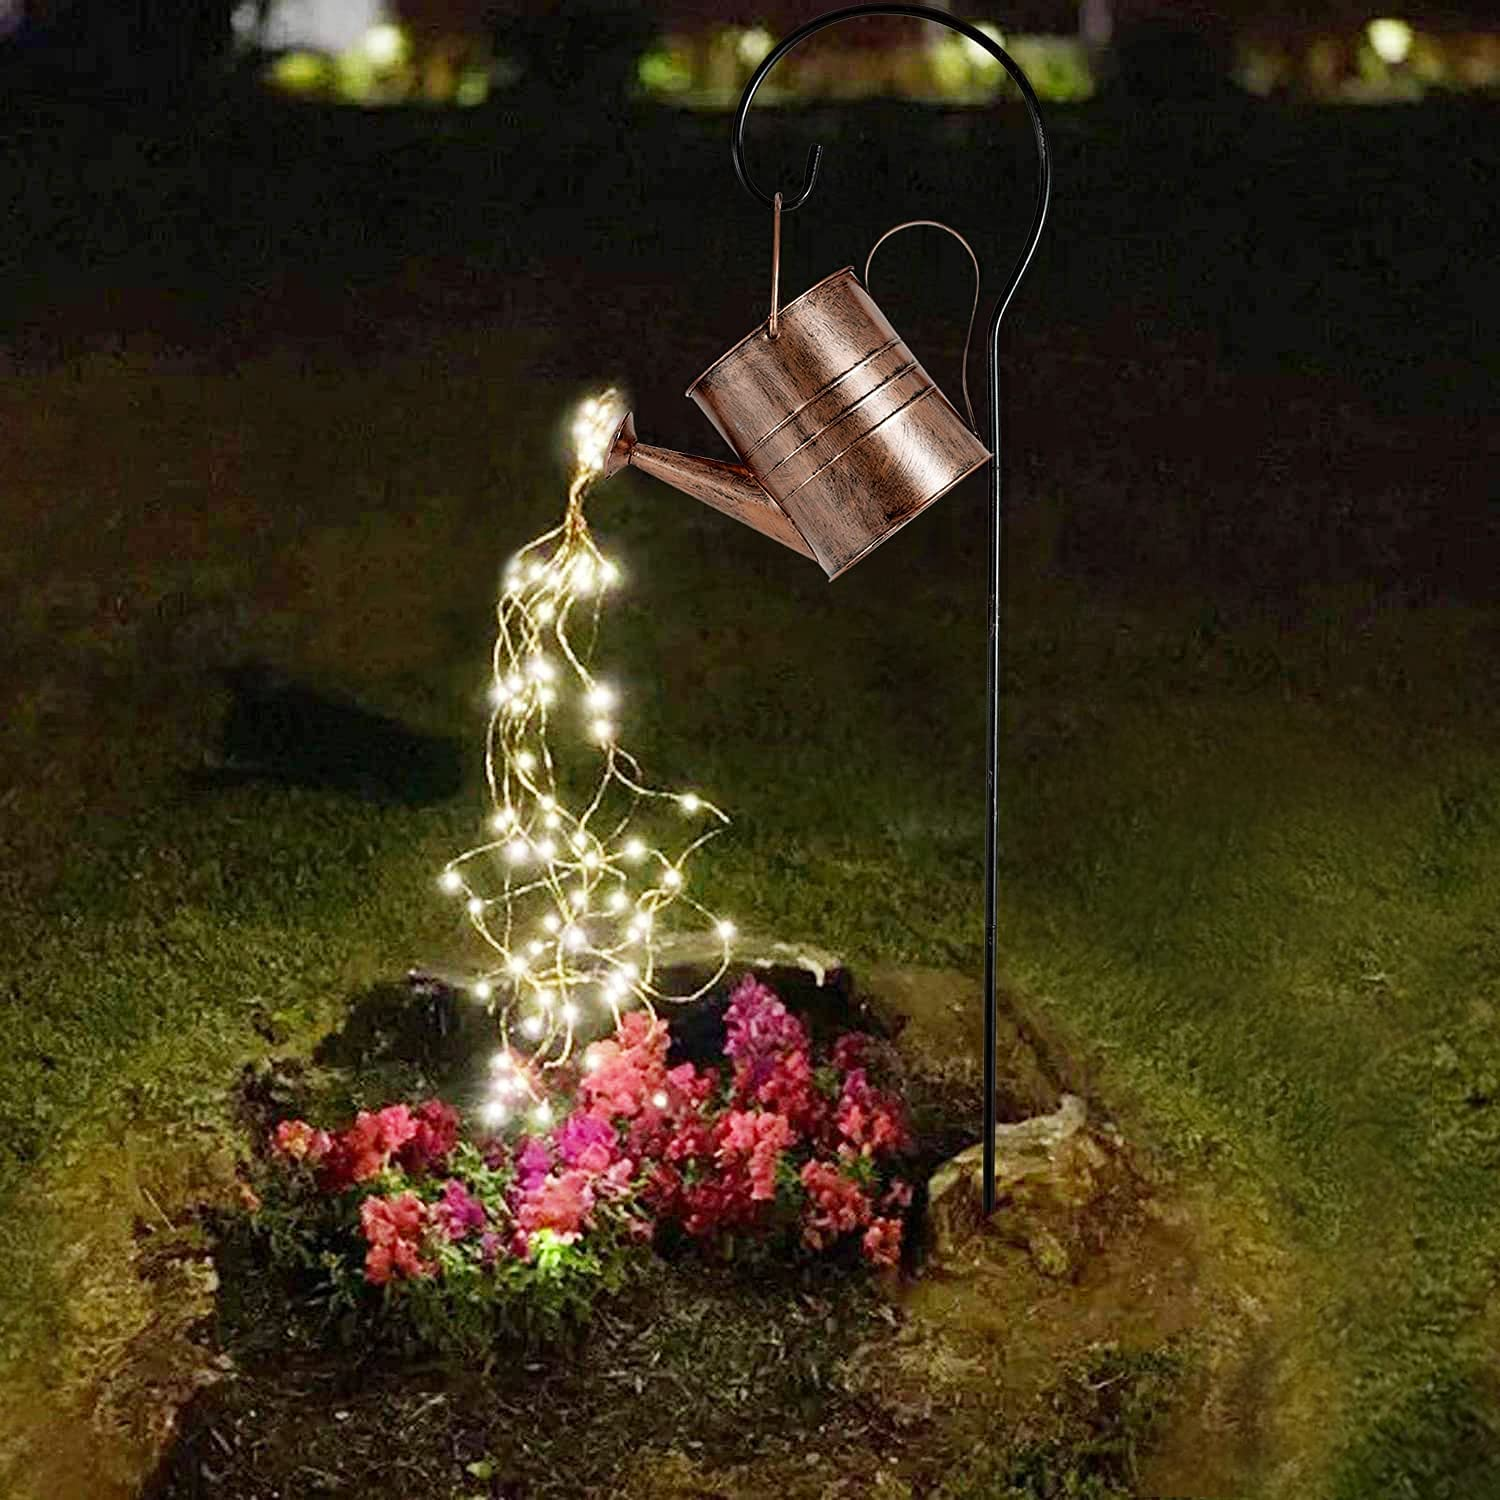 Garden Decor Solar Lights Outdoor Watering Can Decoration Hanging Lantern Waterproof for Lawn Patio Garden Courtyard Table Yard Pathway Walkway Outdoor Gardening Gifts, Warm White LED